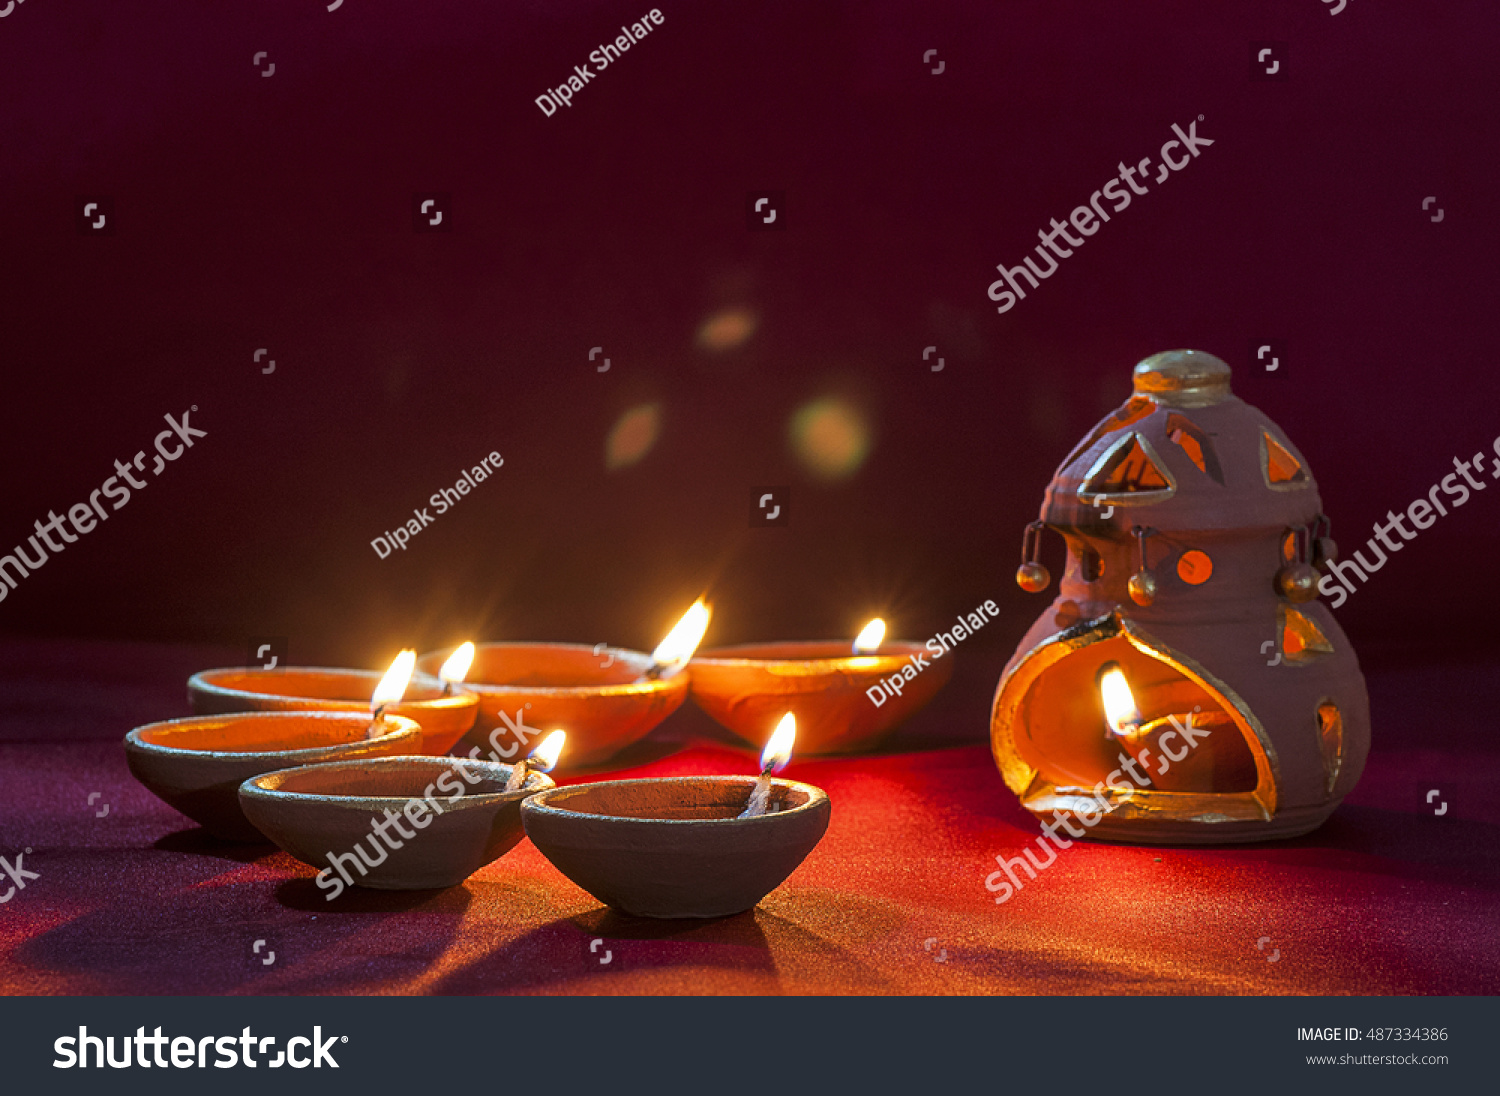 Clay diya lamps lit during Diwali Celebration Greetings Card Design Indian Hindu Light Festival called Diwali